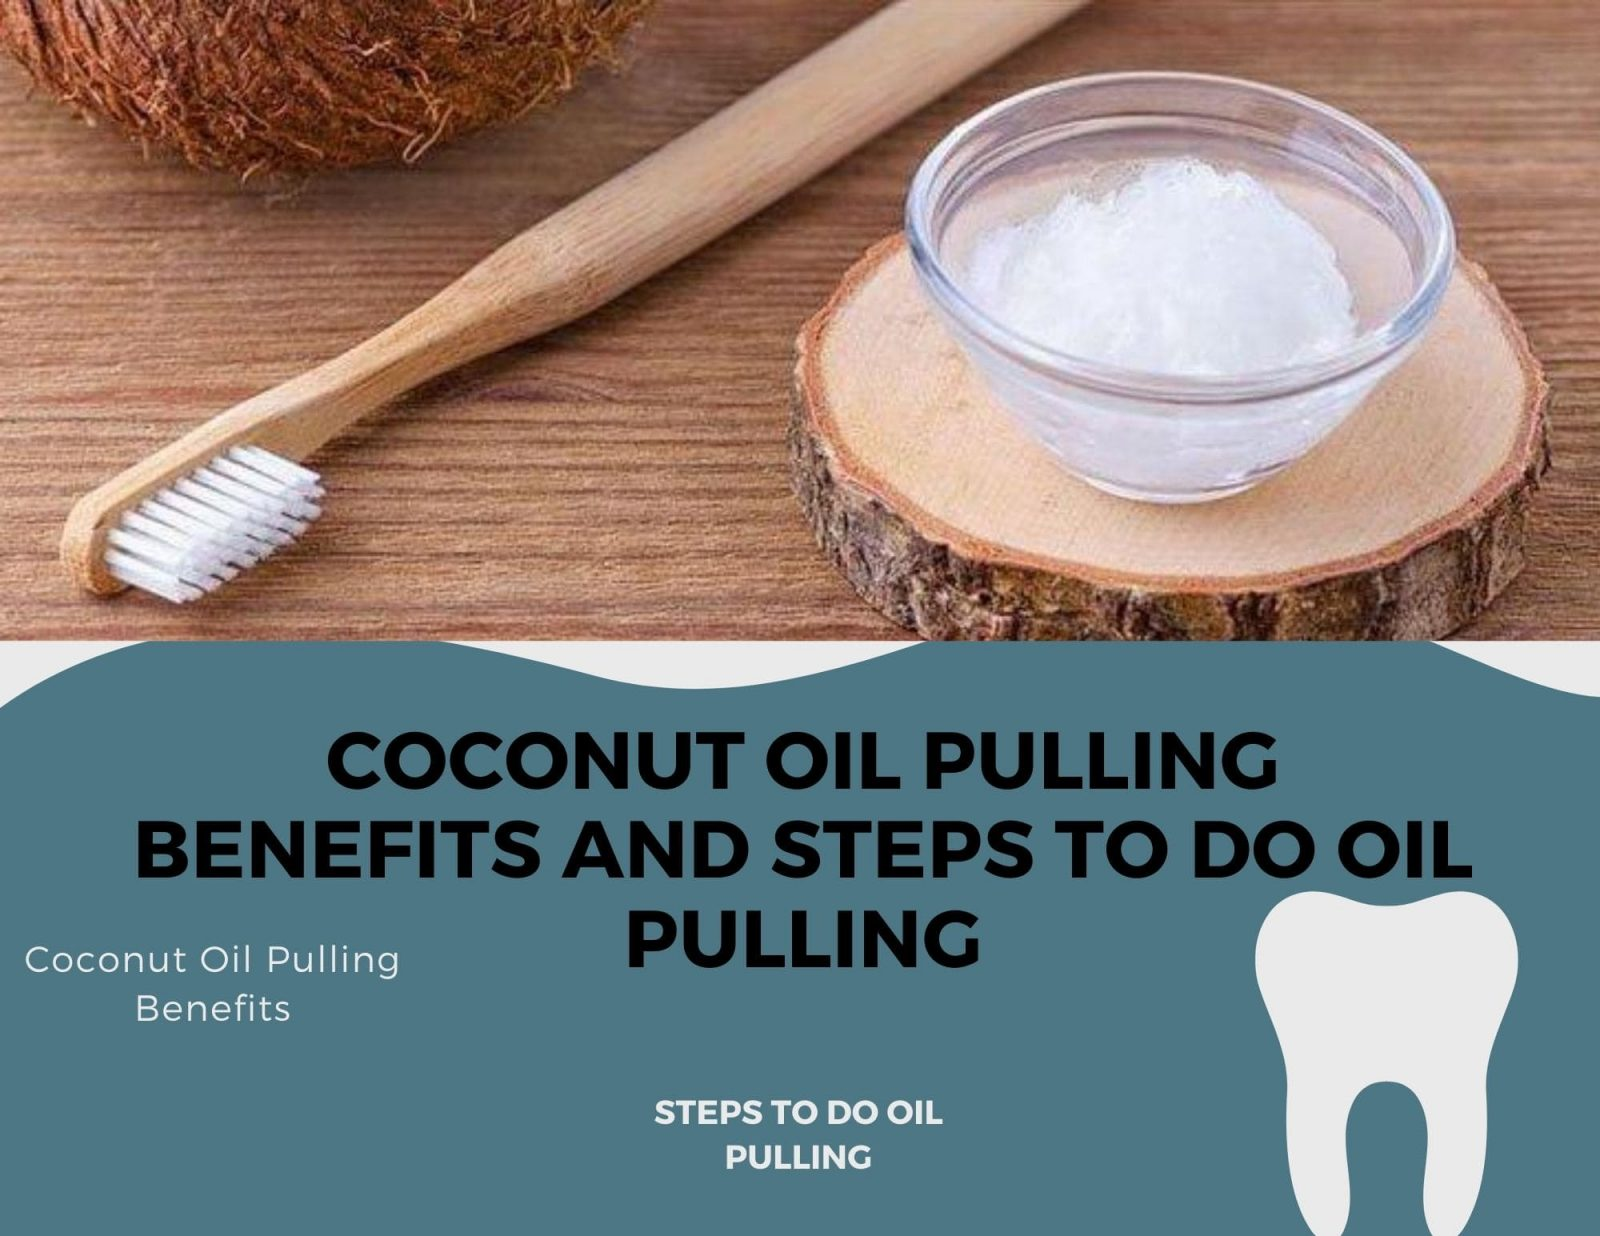 Coconut Oil Pulling Benefits and Steps to Do Oil Pulling